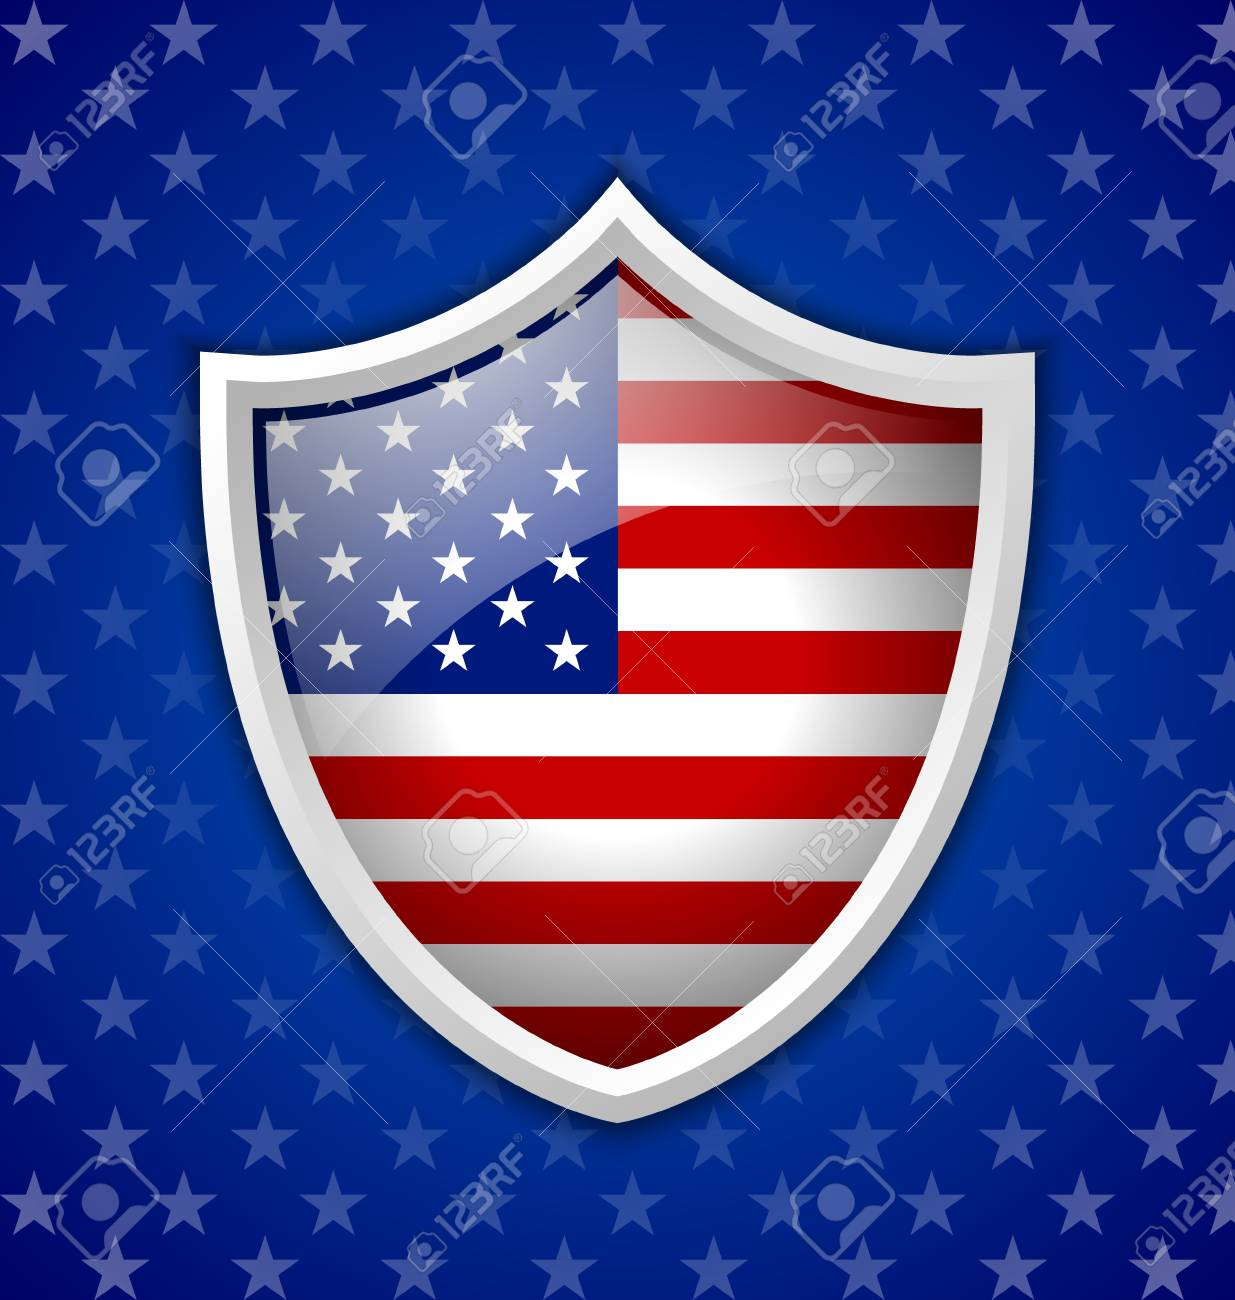 American shield badge on blue starry background Stock Vector - 20405914